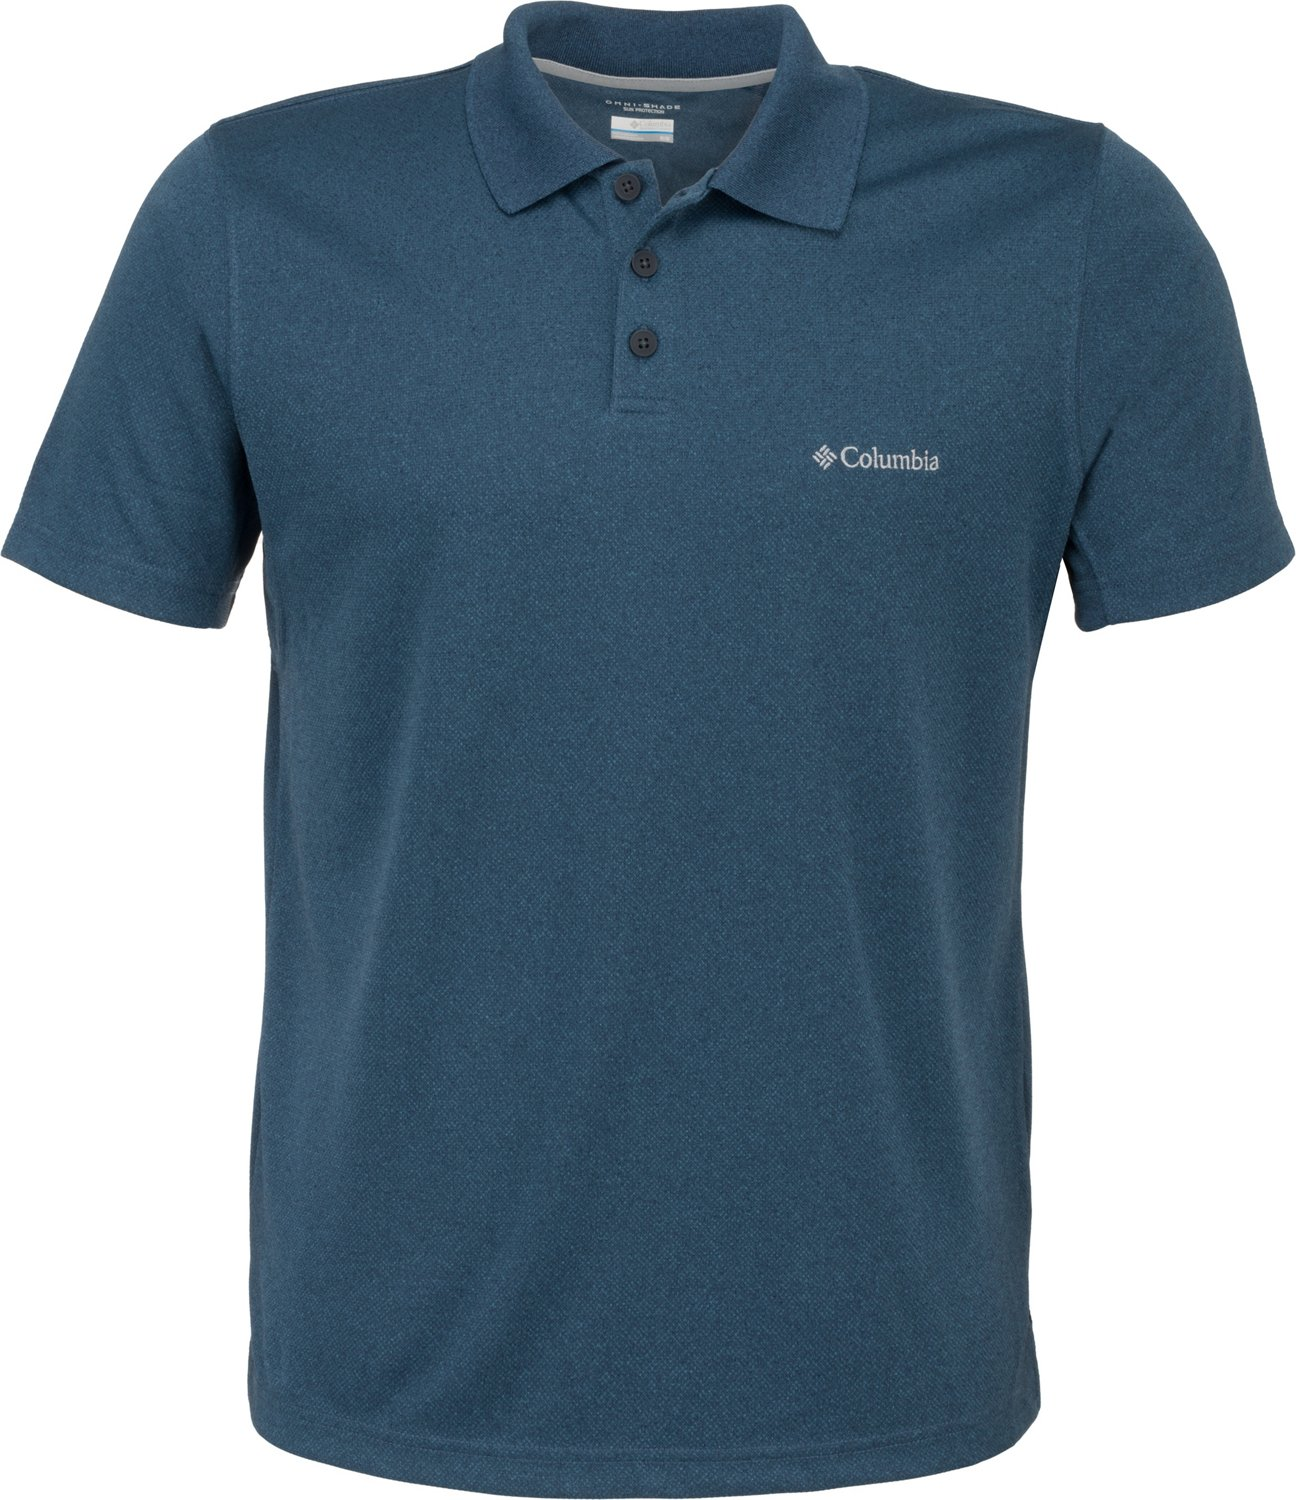 Display product reviews for Columbia Sportswear Men's Utilizer Polo